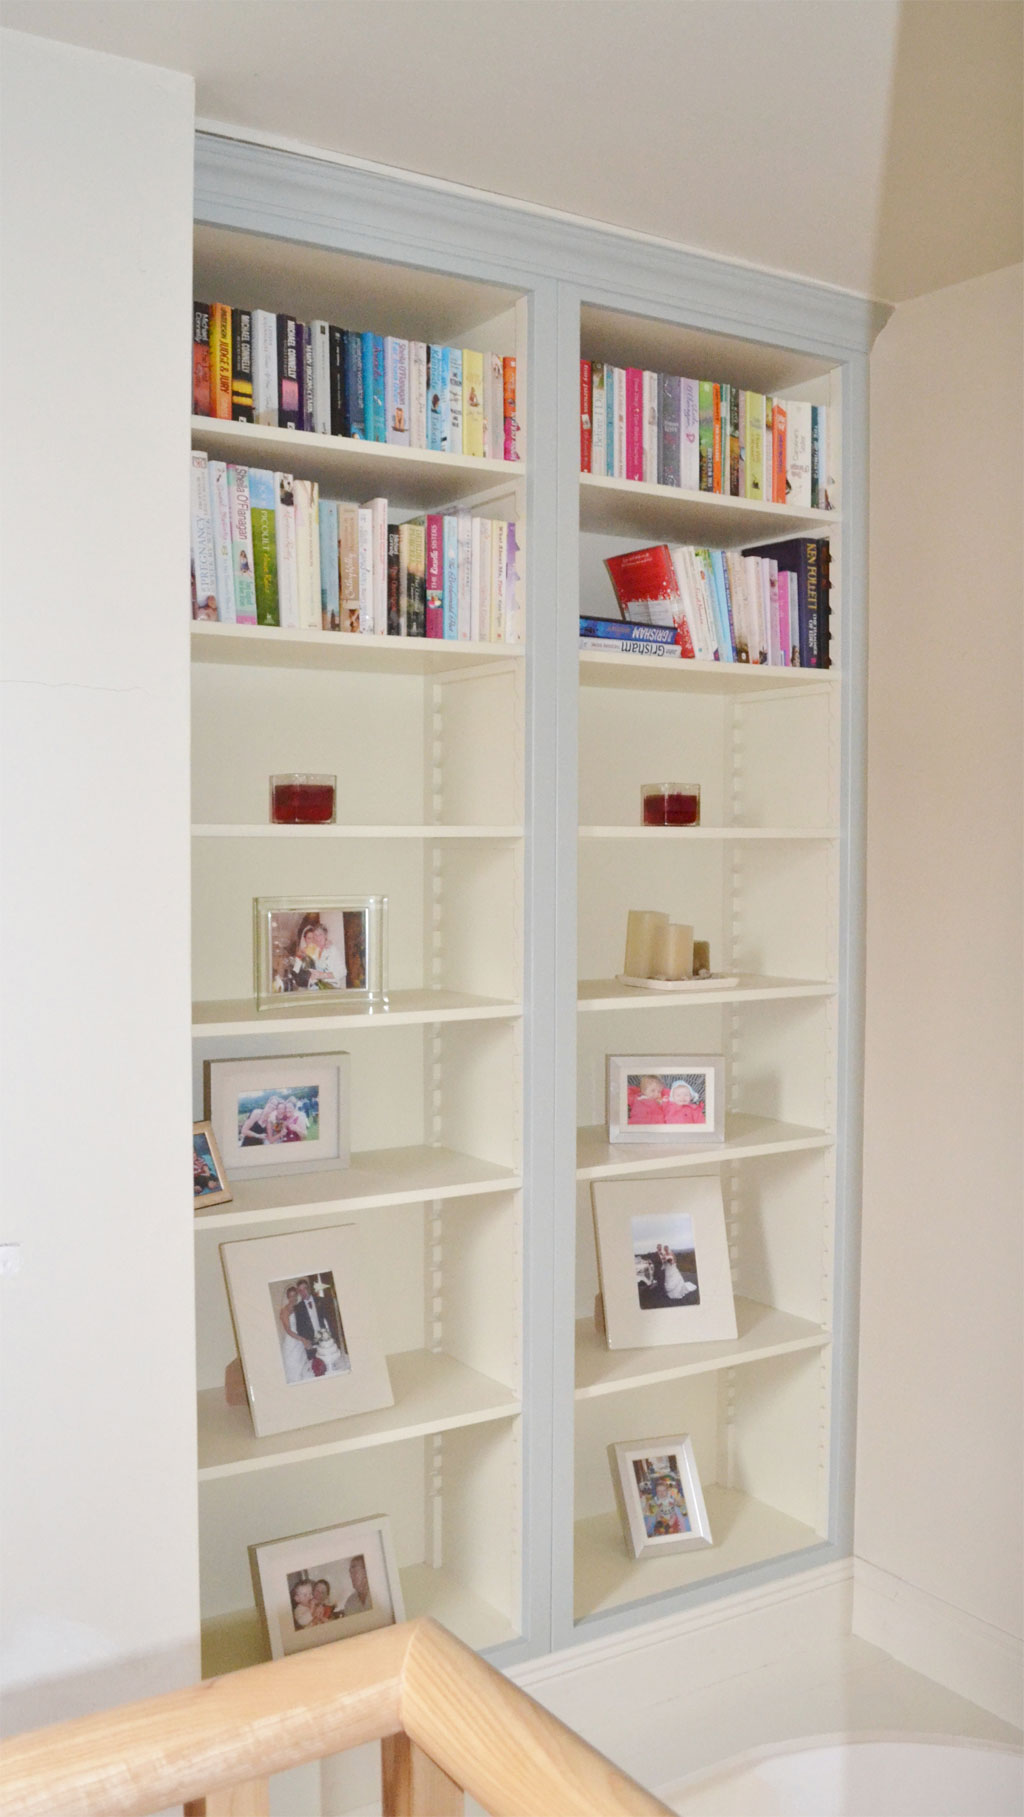 Deanery Fitted 2 Bay Bookcase Cabinet with adjustable Shelving and hand-painted finish